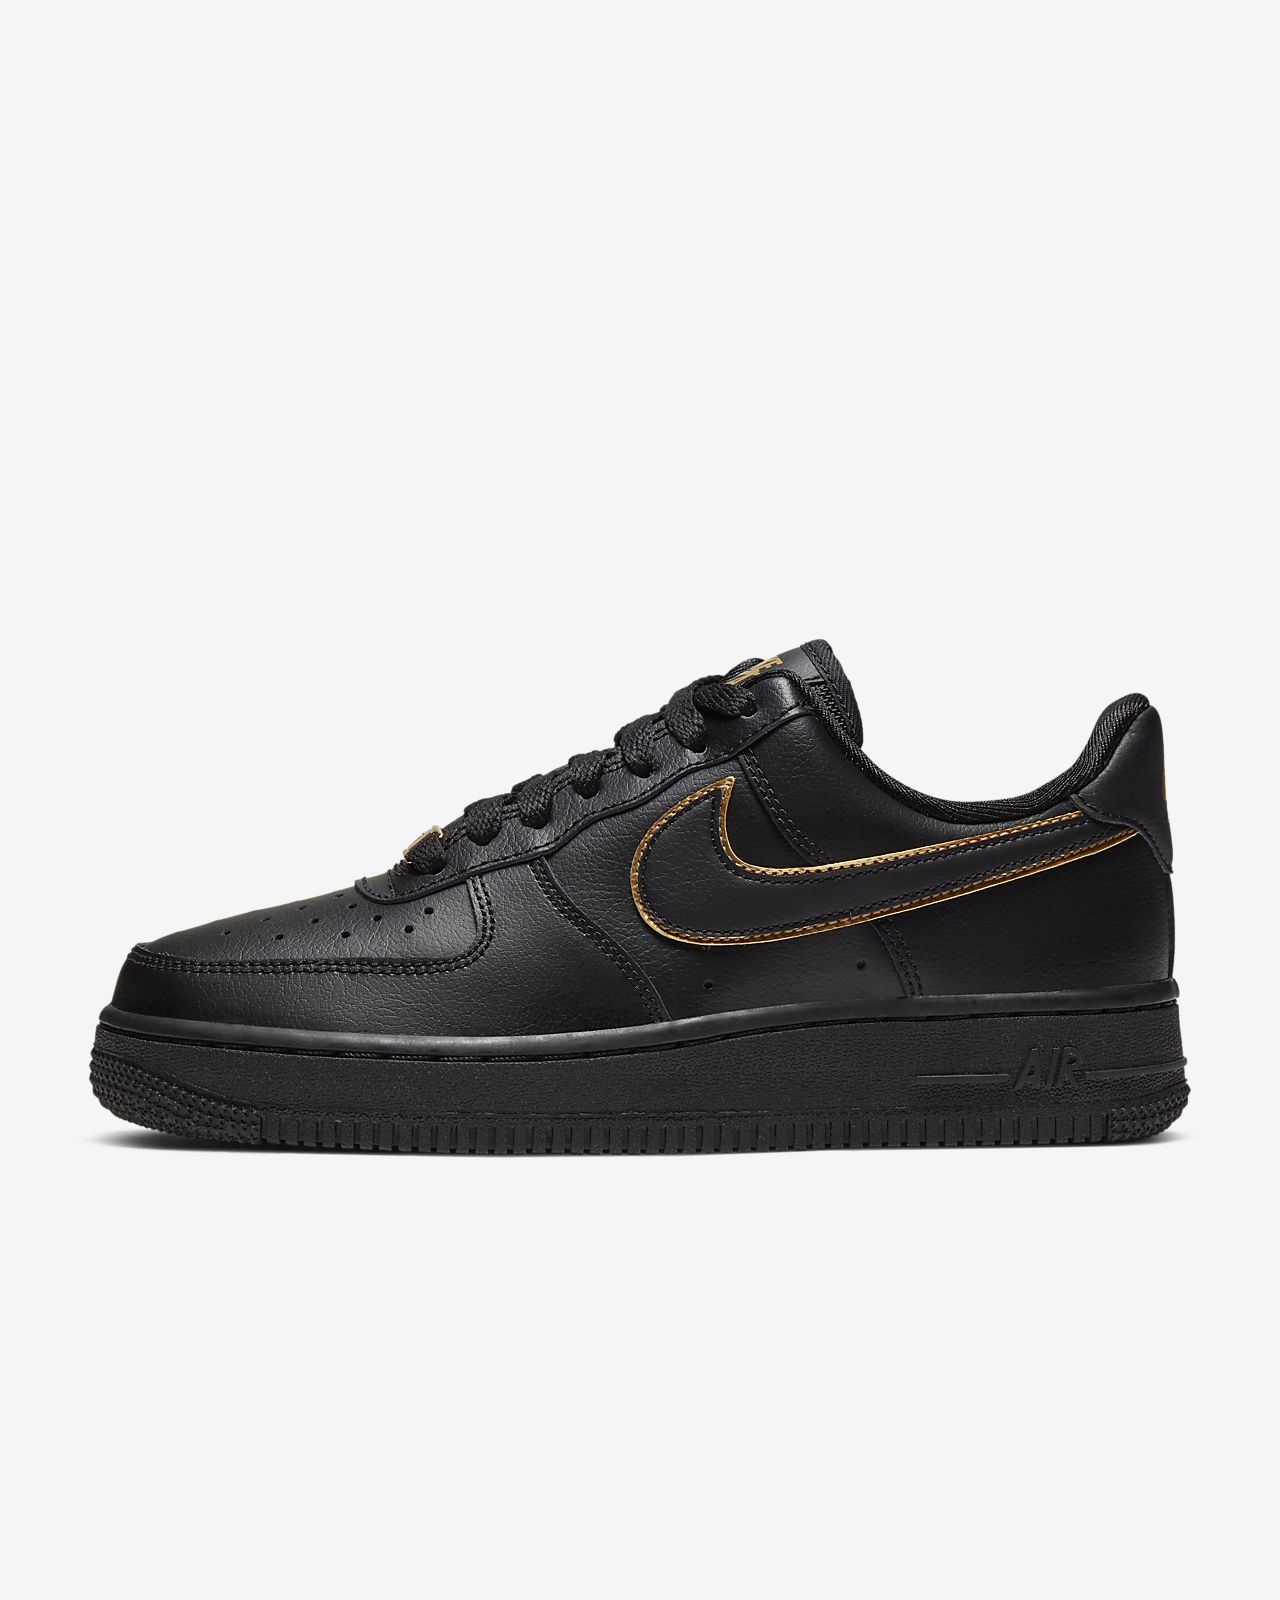 Enjoy Women's Shoe Nike Air Force 1 '07 Essential Aluminium